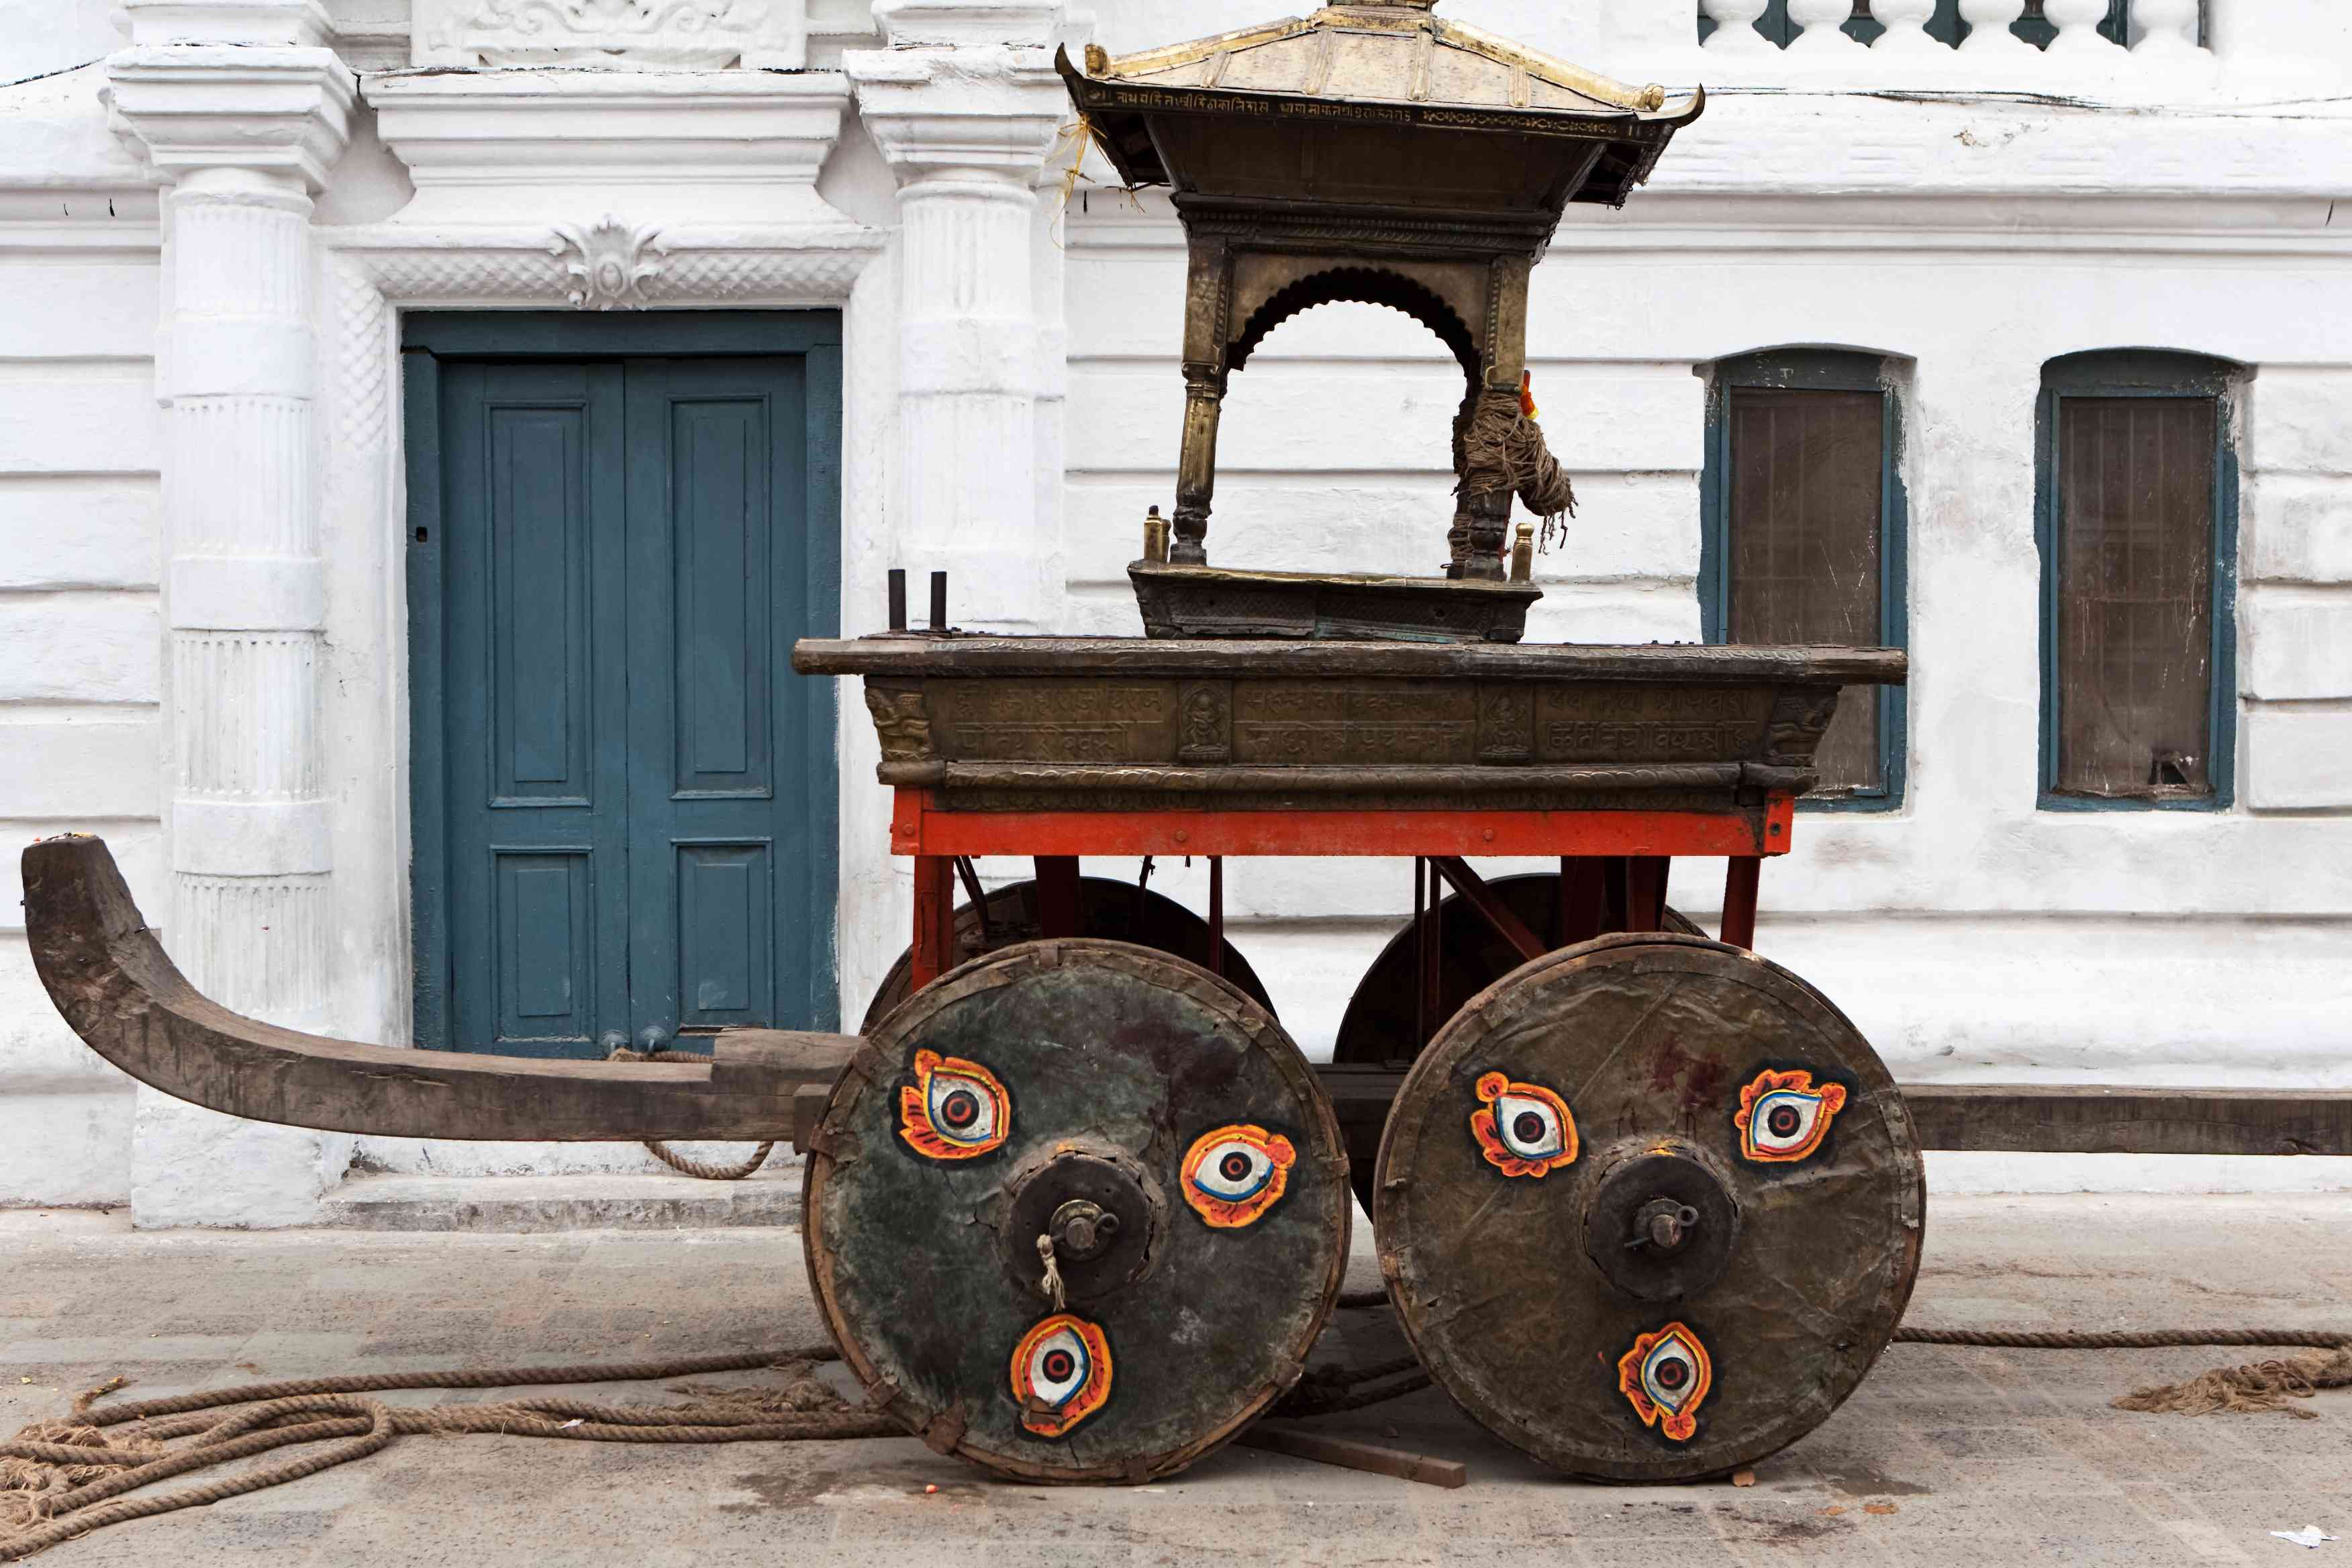 wooden chariot in front of a white palace building